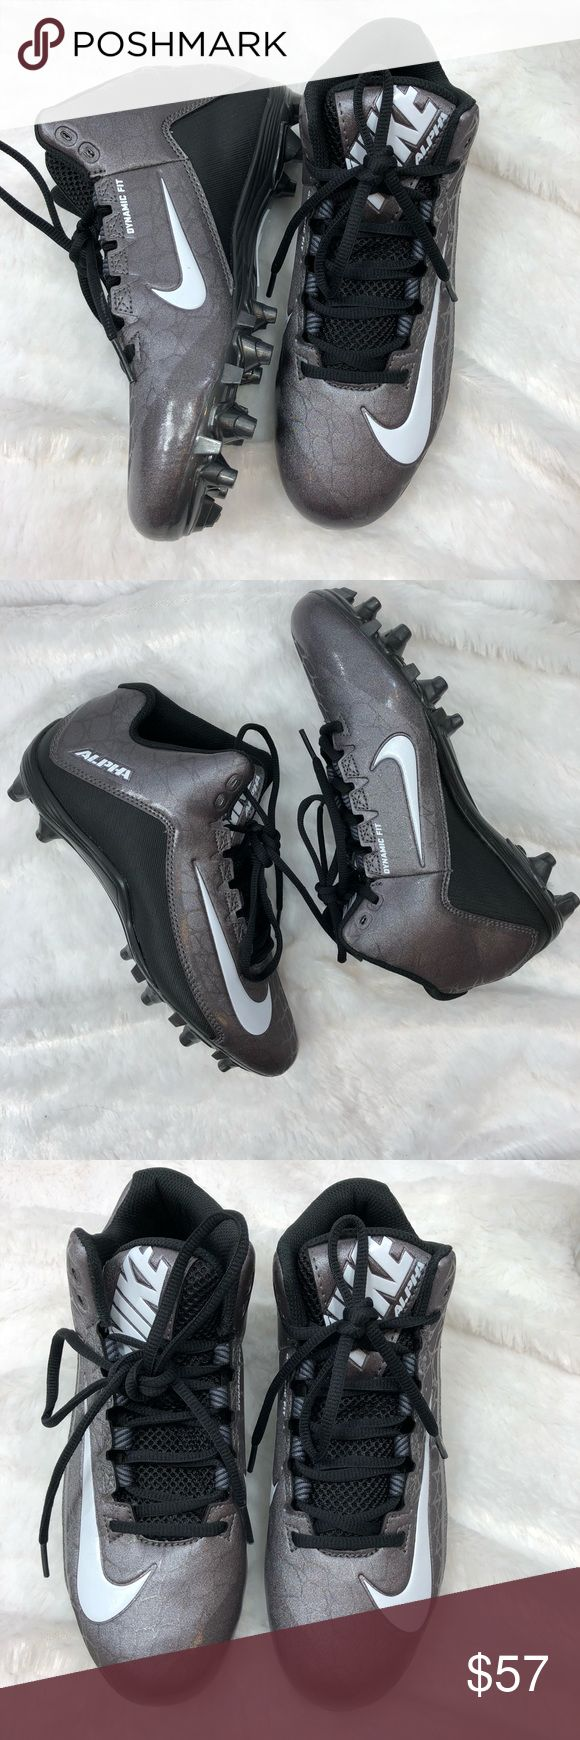 NIKE ALPHA STRIKE FOOTBALL CLEATS SZ 6.5 NEW NIKE ALPHA STRIKE 2 3/4 TD METALLIC GRAY FOOTBALL SHOES CLEATS New Without Tags! Men's SZ 6.5 •Fly around on the field and make game-changing plays in this performance football cleat from Nike. •Synthetic leather provides comfort and durability, dual-pull fit system enables outstanding dynamic lockdown, & 3/4 length wedge Phylon midsole offers midfoot cushioning and support. •TPU plate for lightweight strength and twelve-stud cleat system…